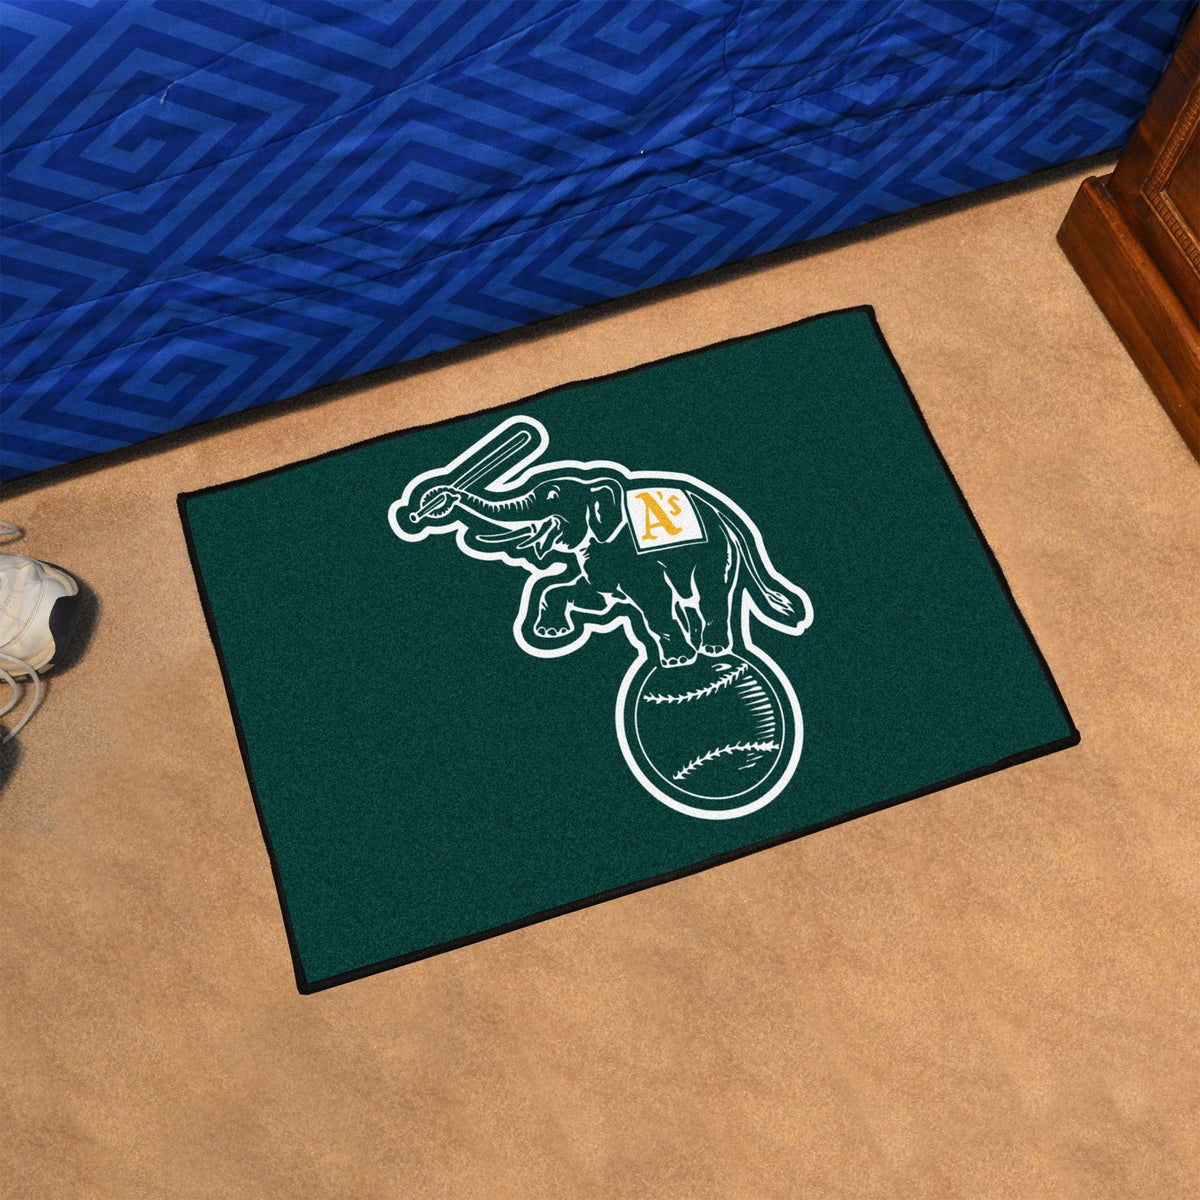 MLB - Starter Mat MLB Mats, Rectangular Mats, Starter Mat, MLB, Home Fan Mats Oakland Athletics 2